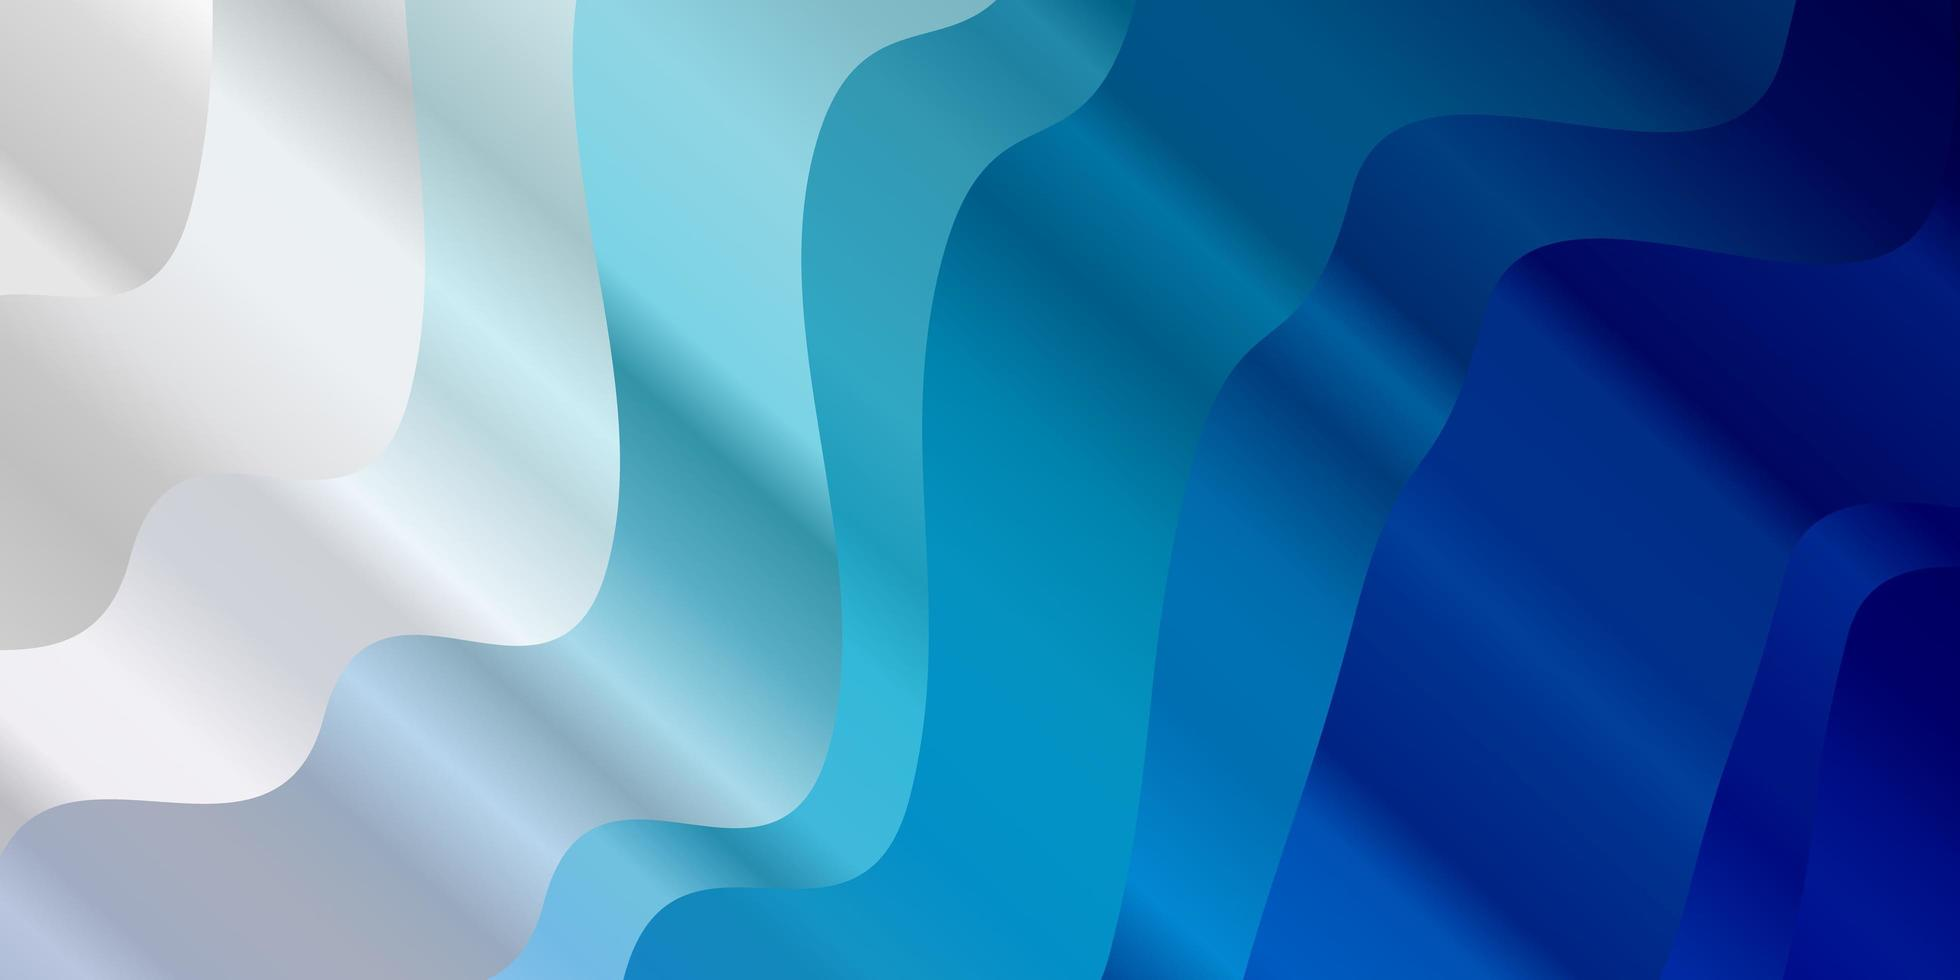 Light BLUE vector texture with wry lines.